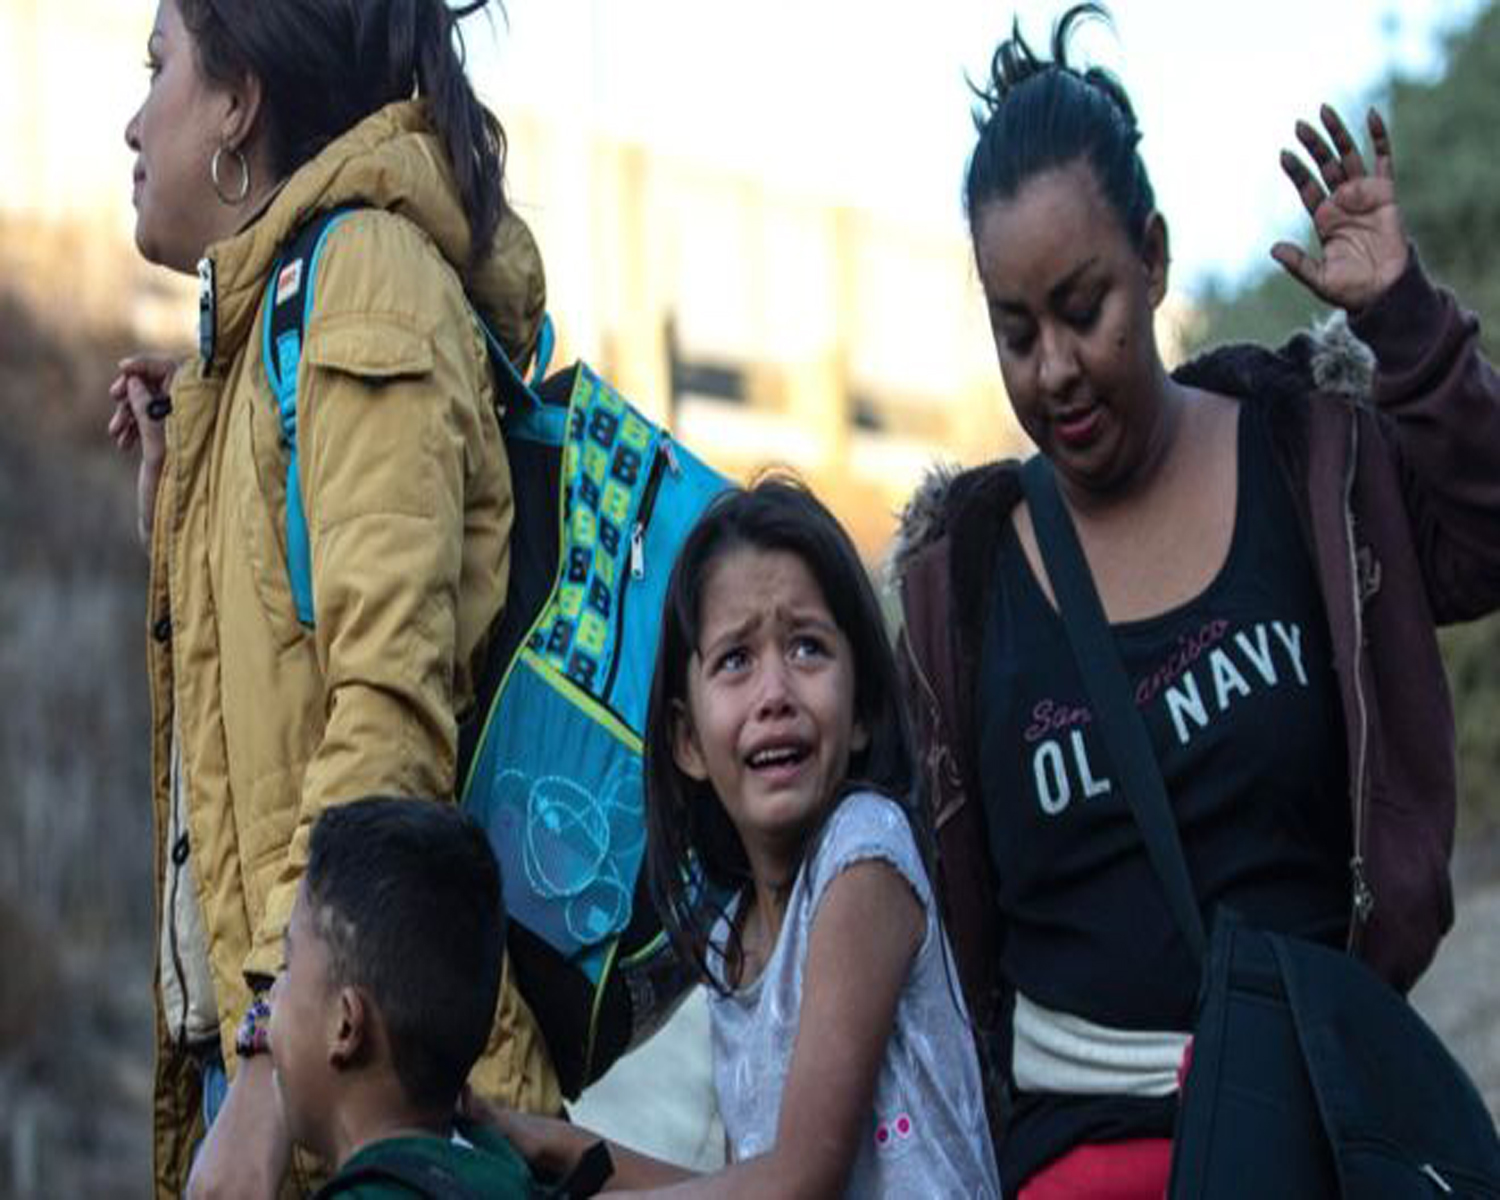 worsened conditions at detention centers